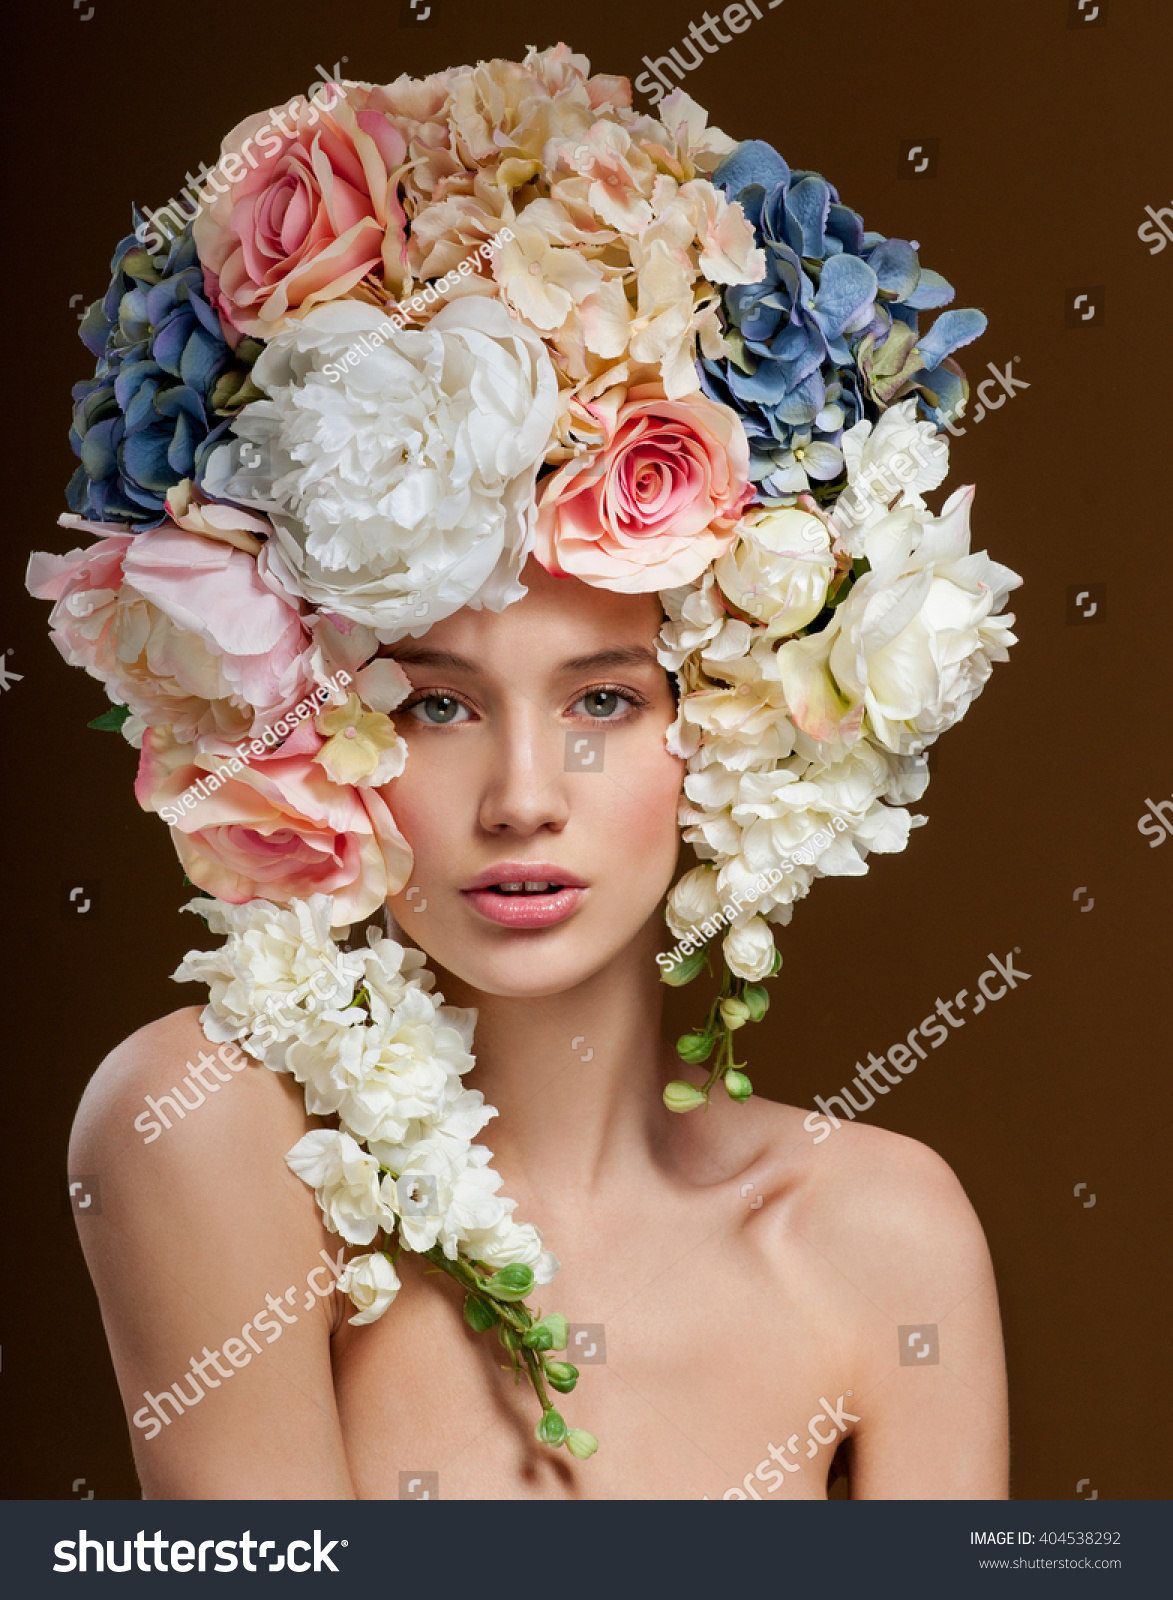 Beautiful woman flowers her hair bouquet stock photo royalty free beautiful woman with flowers in her hair bouquet of beautiful flowers hairstyle with flowers izmirmasajfo